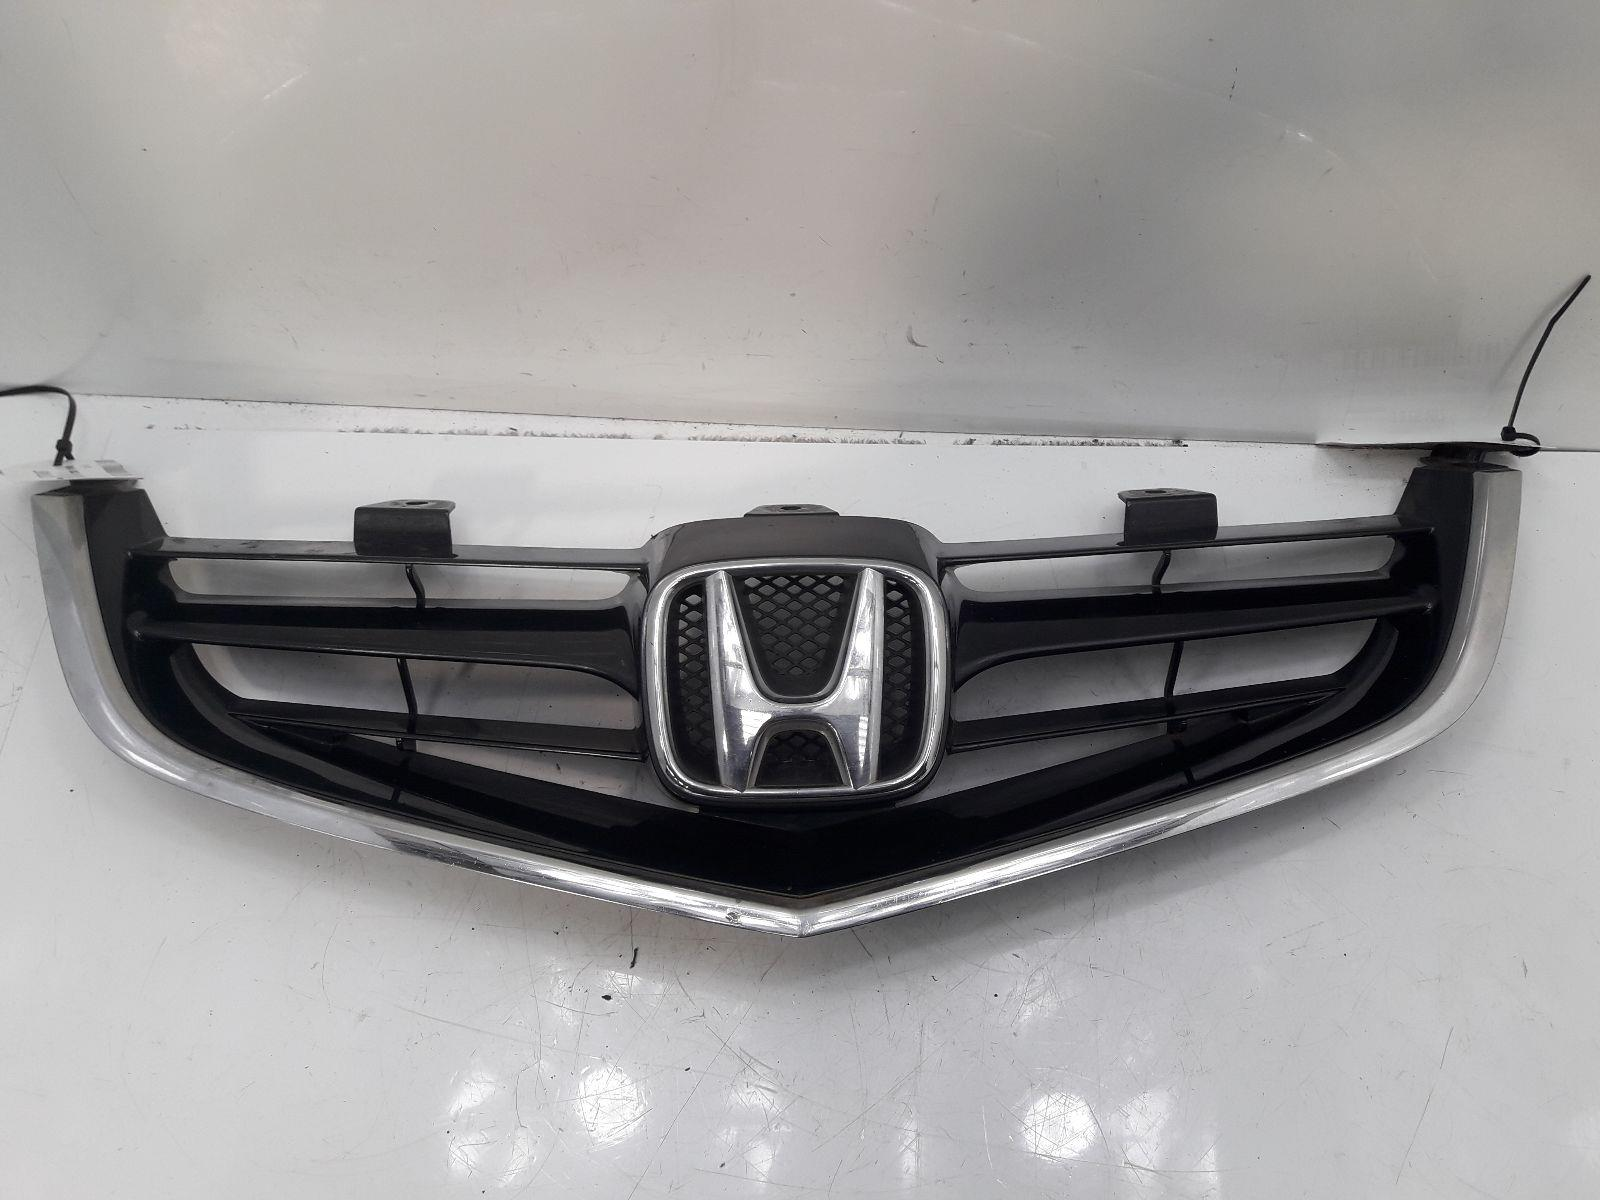 hight resolution of front grille honda accord 2003 to 2005 5 door estate warranty 7375497